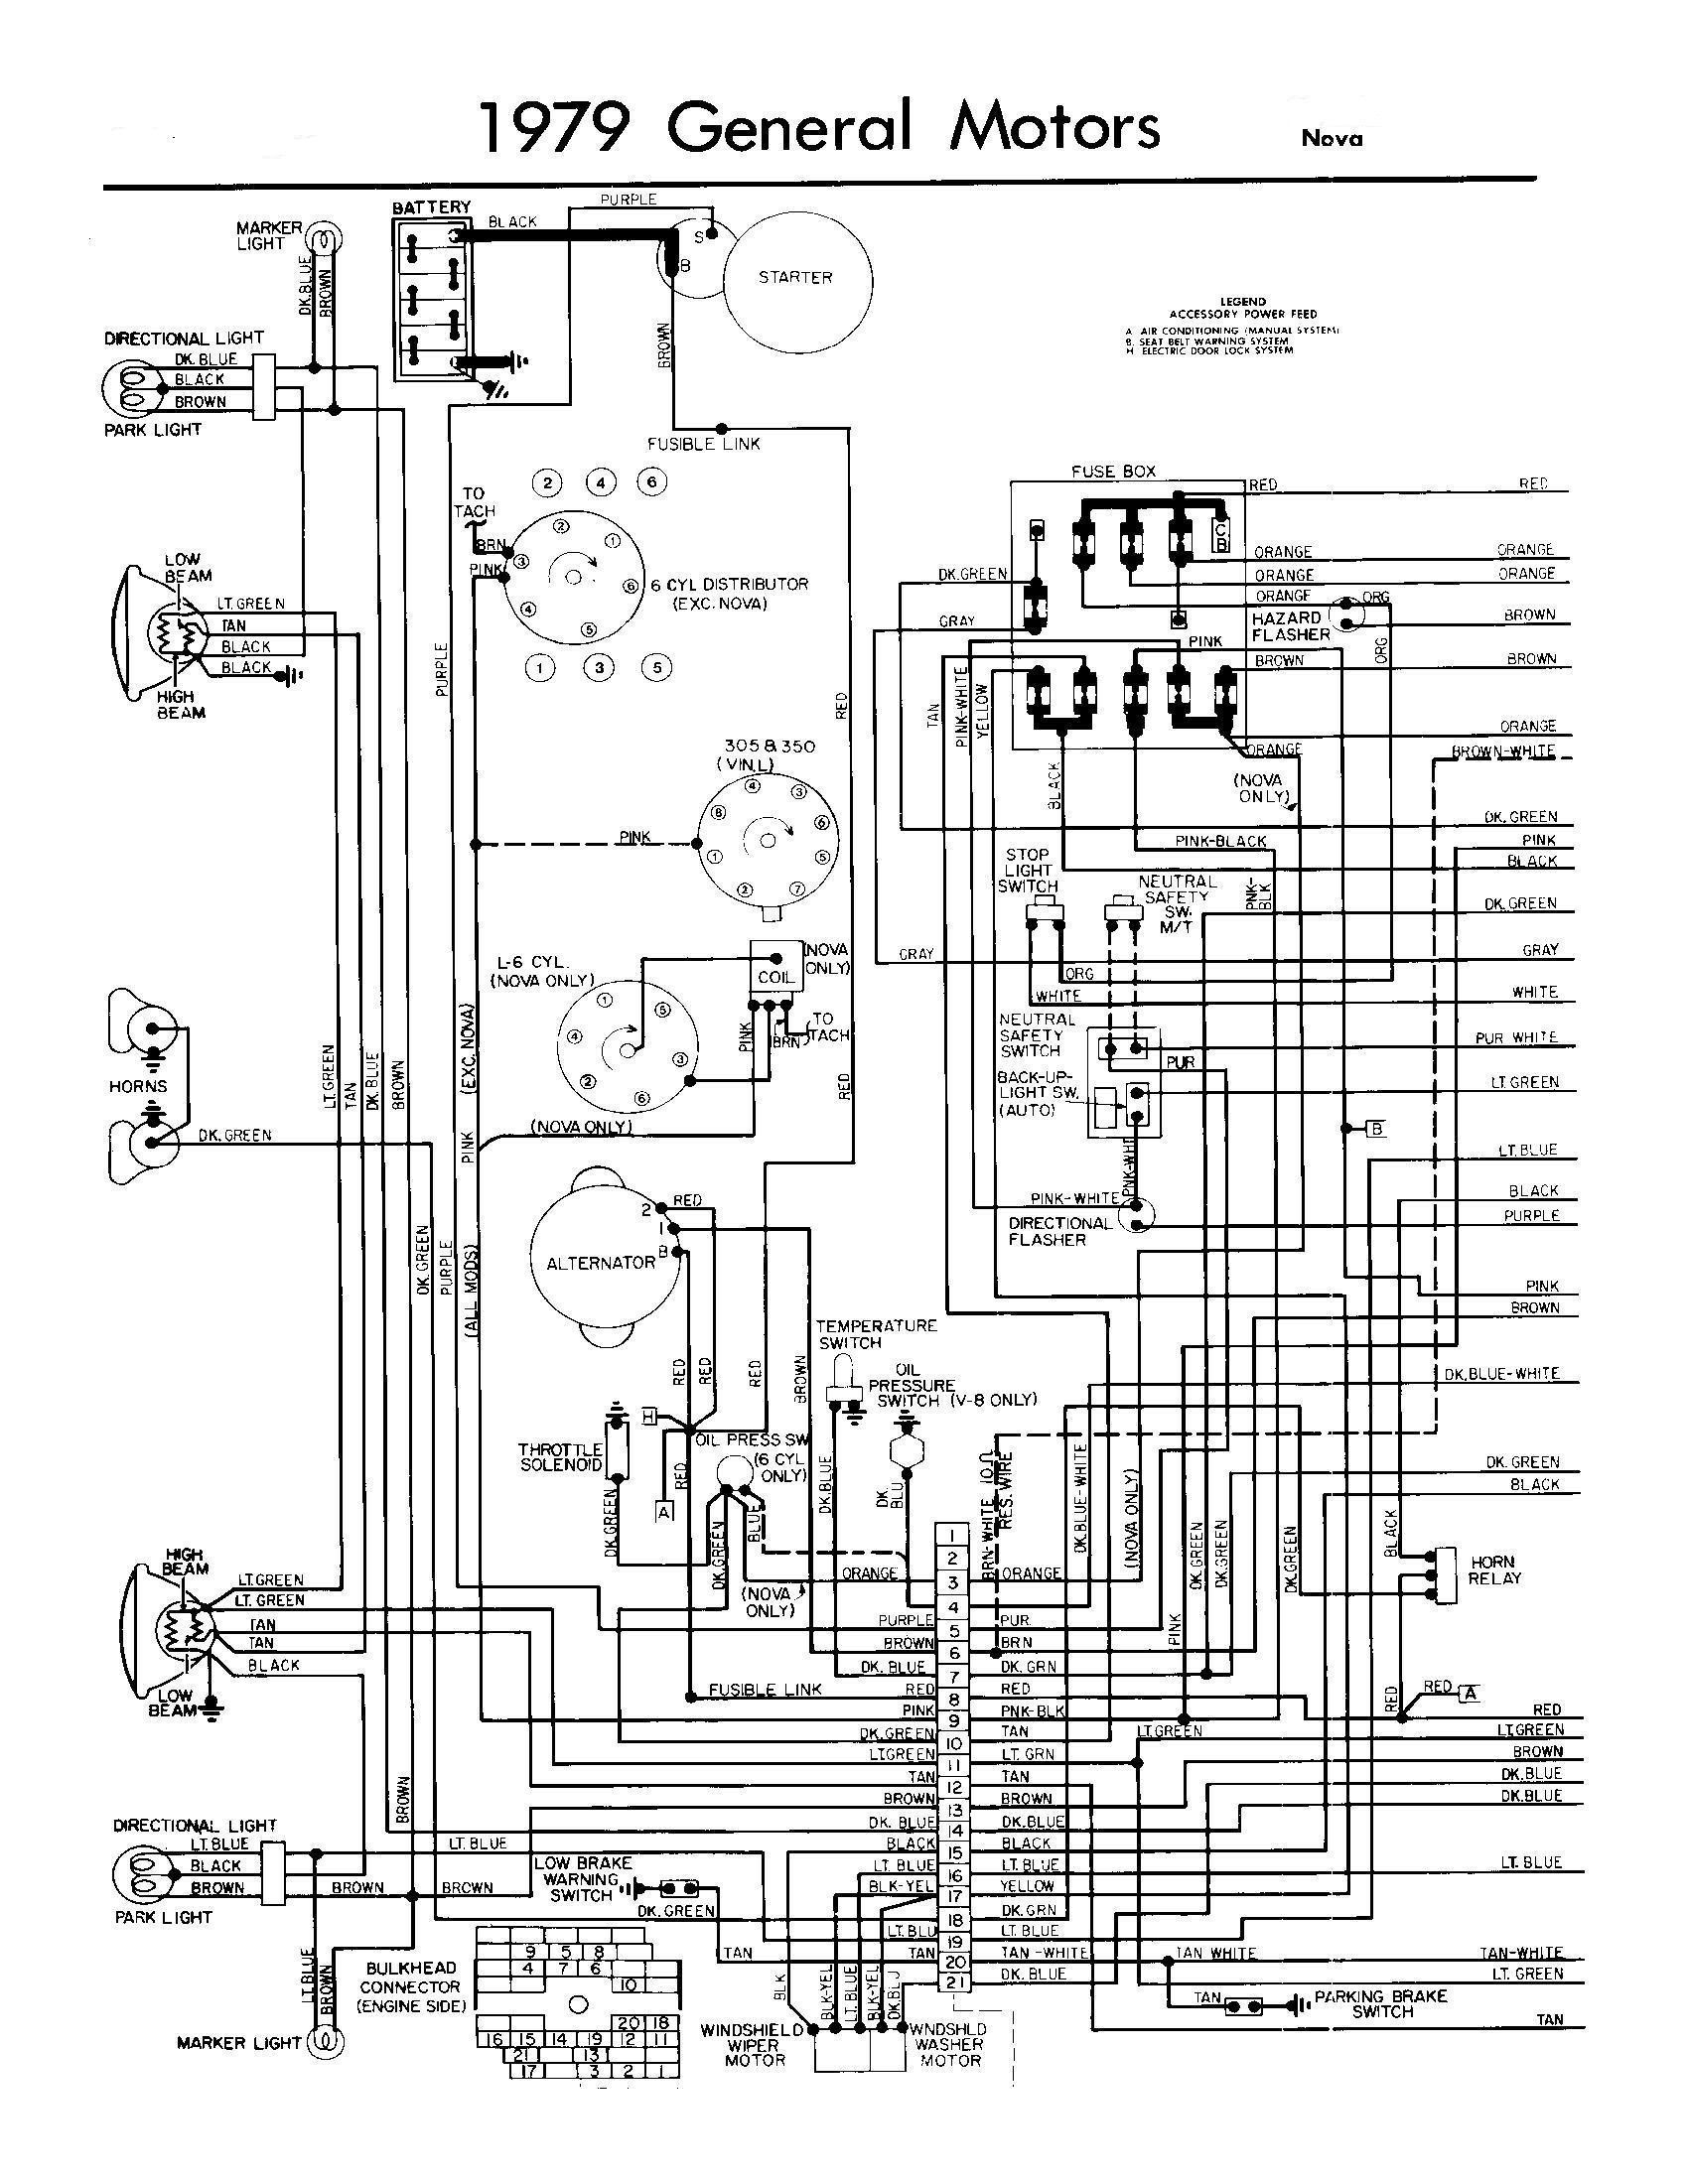 Truck Diagram Parts All Generation Wiring Schematics Chevy Nova forum